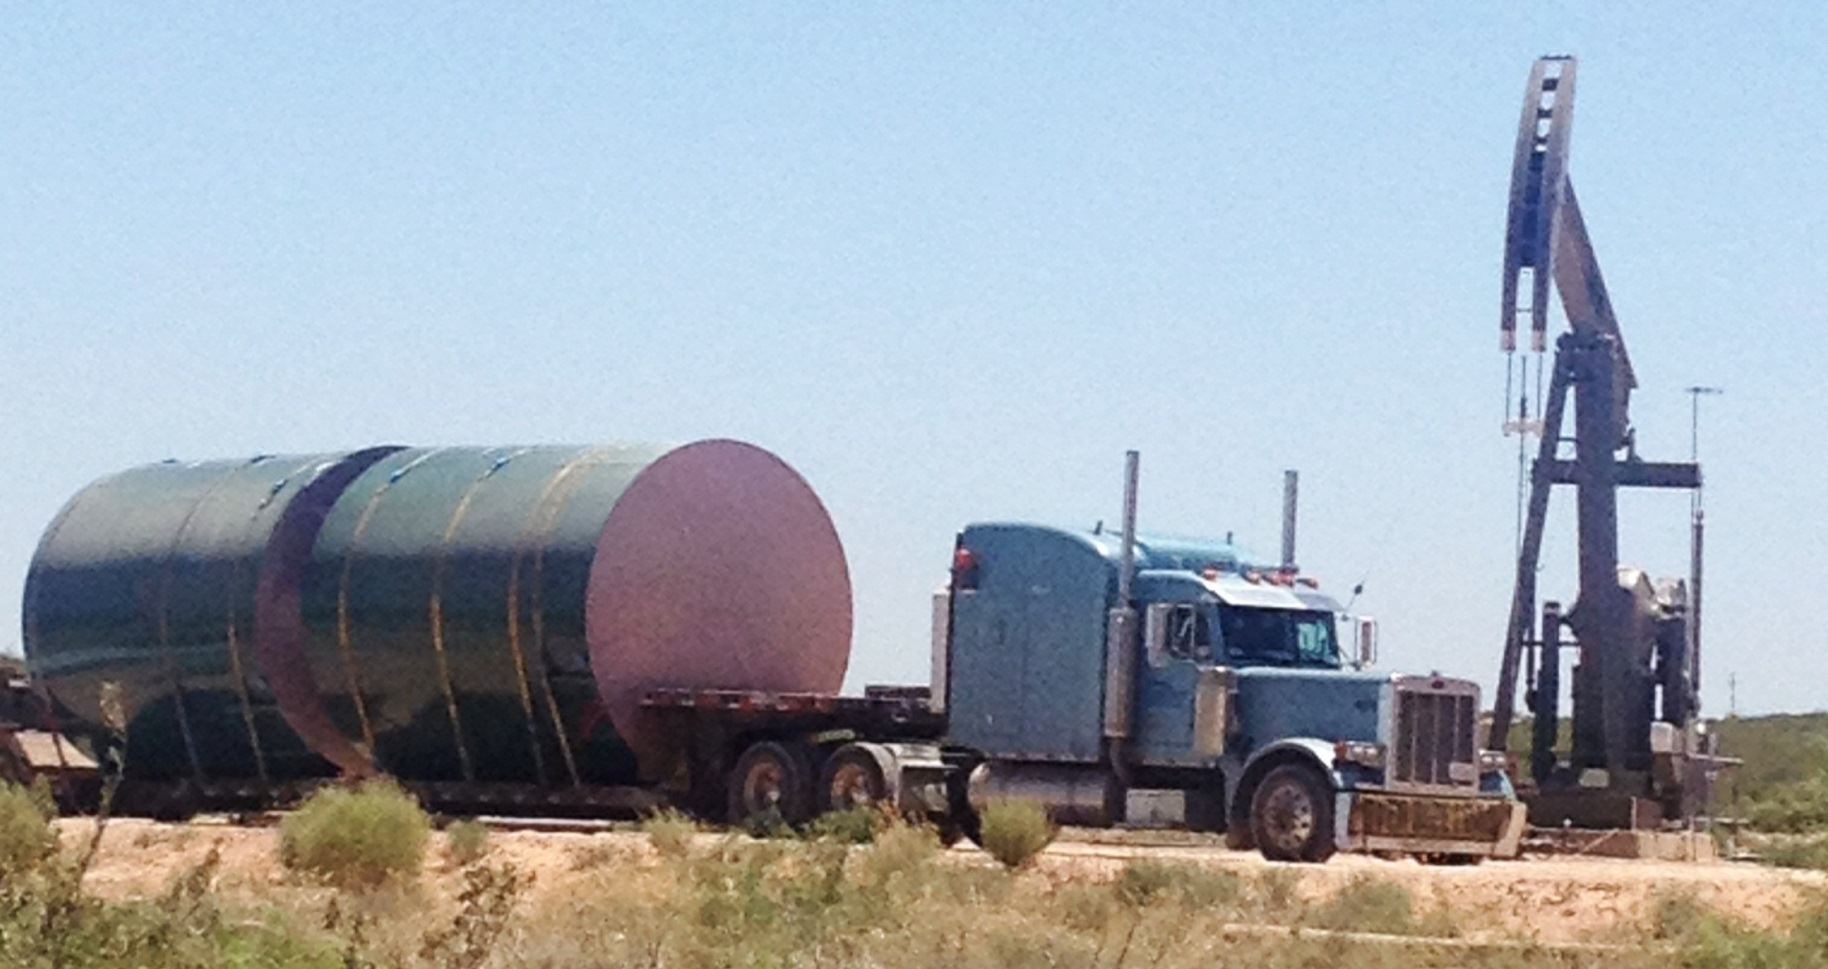 Tank Partners 400 BBL delivery to West Texas